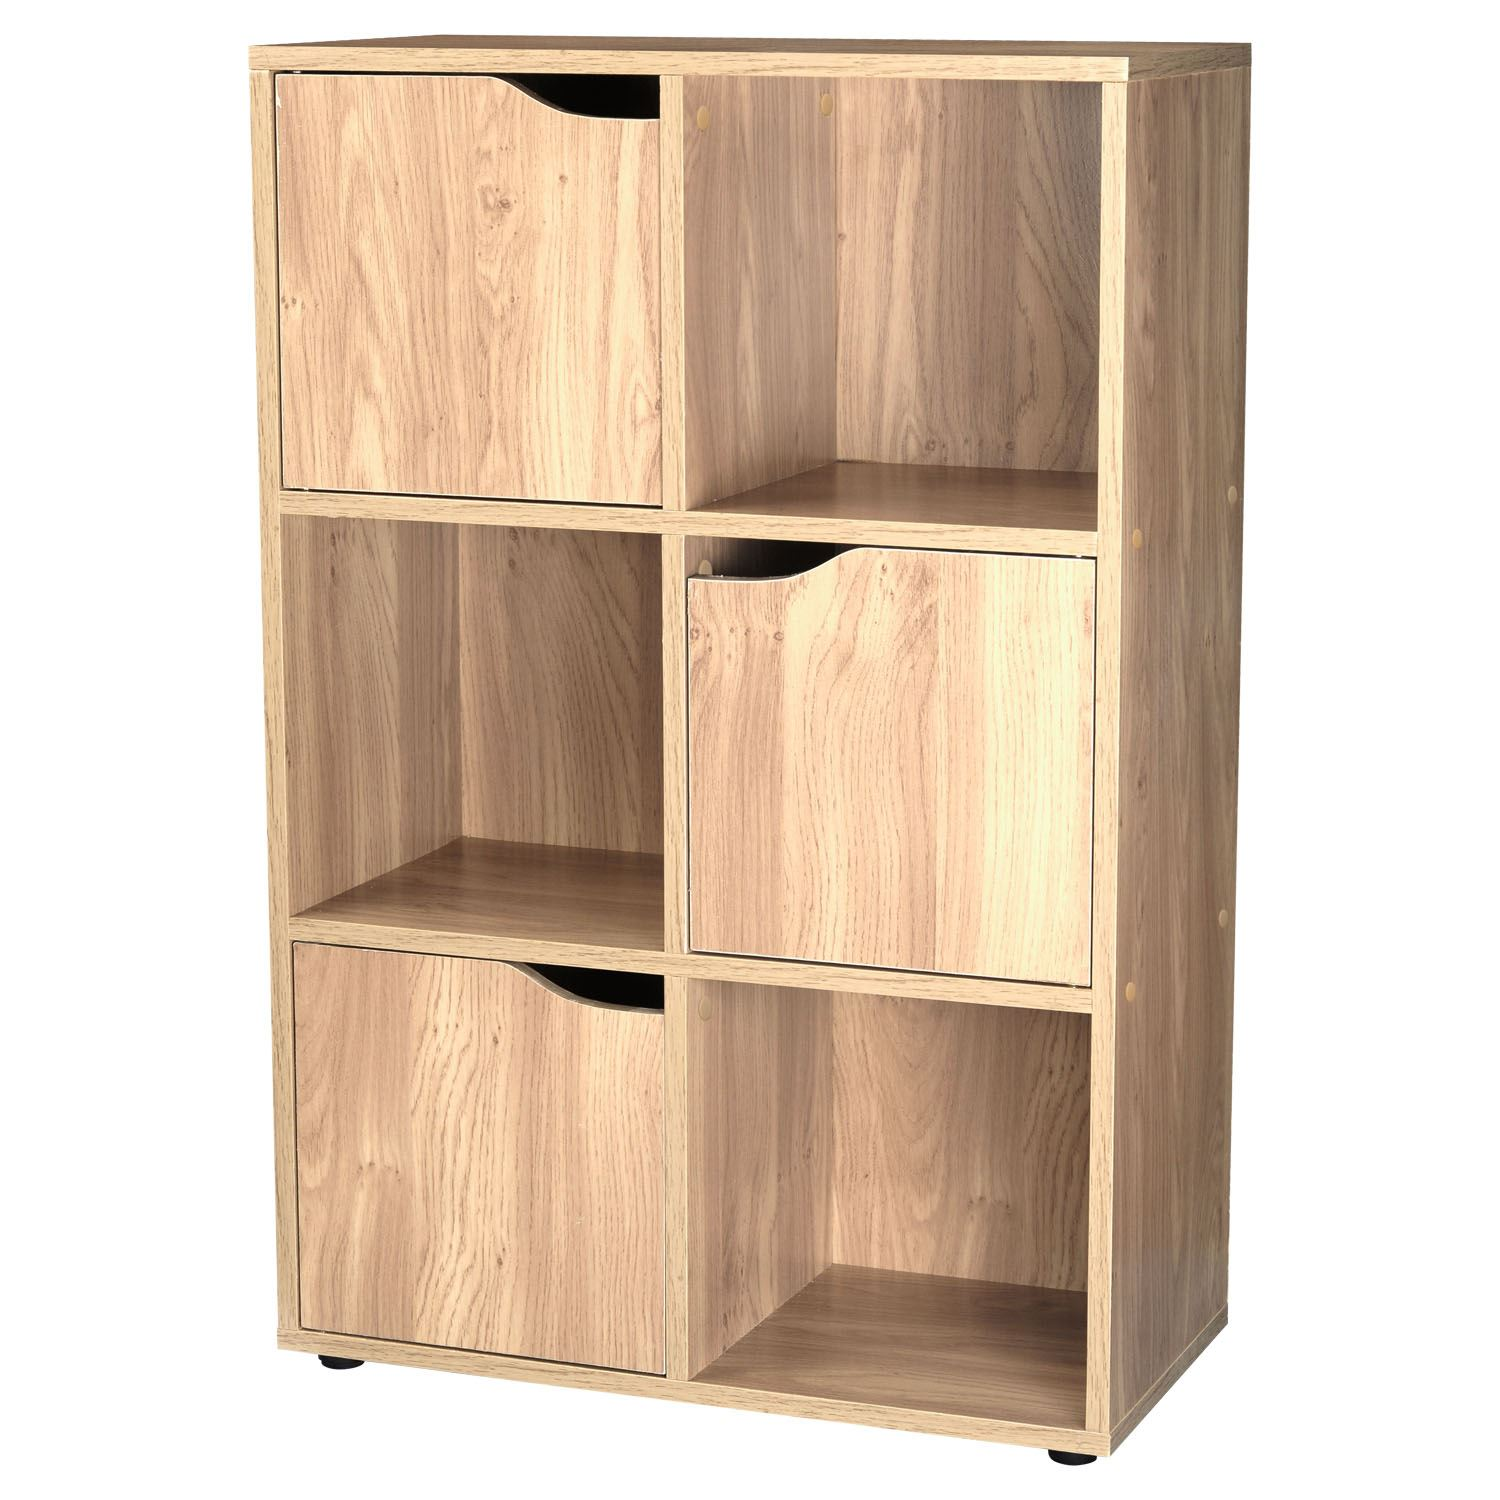 shelving unit with doors 4 6 9 cubes wooden storage display unit shelves cupboard 26051